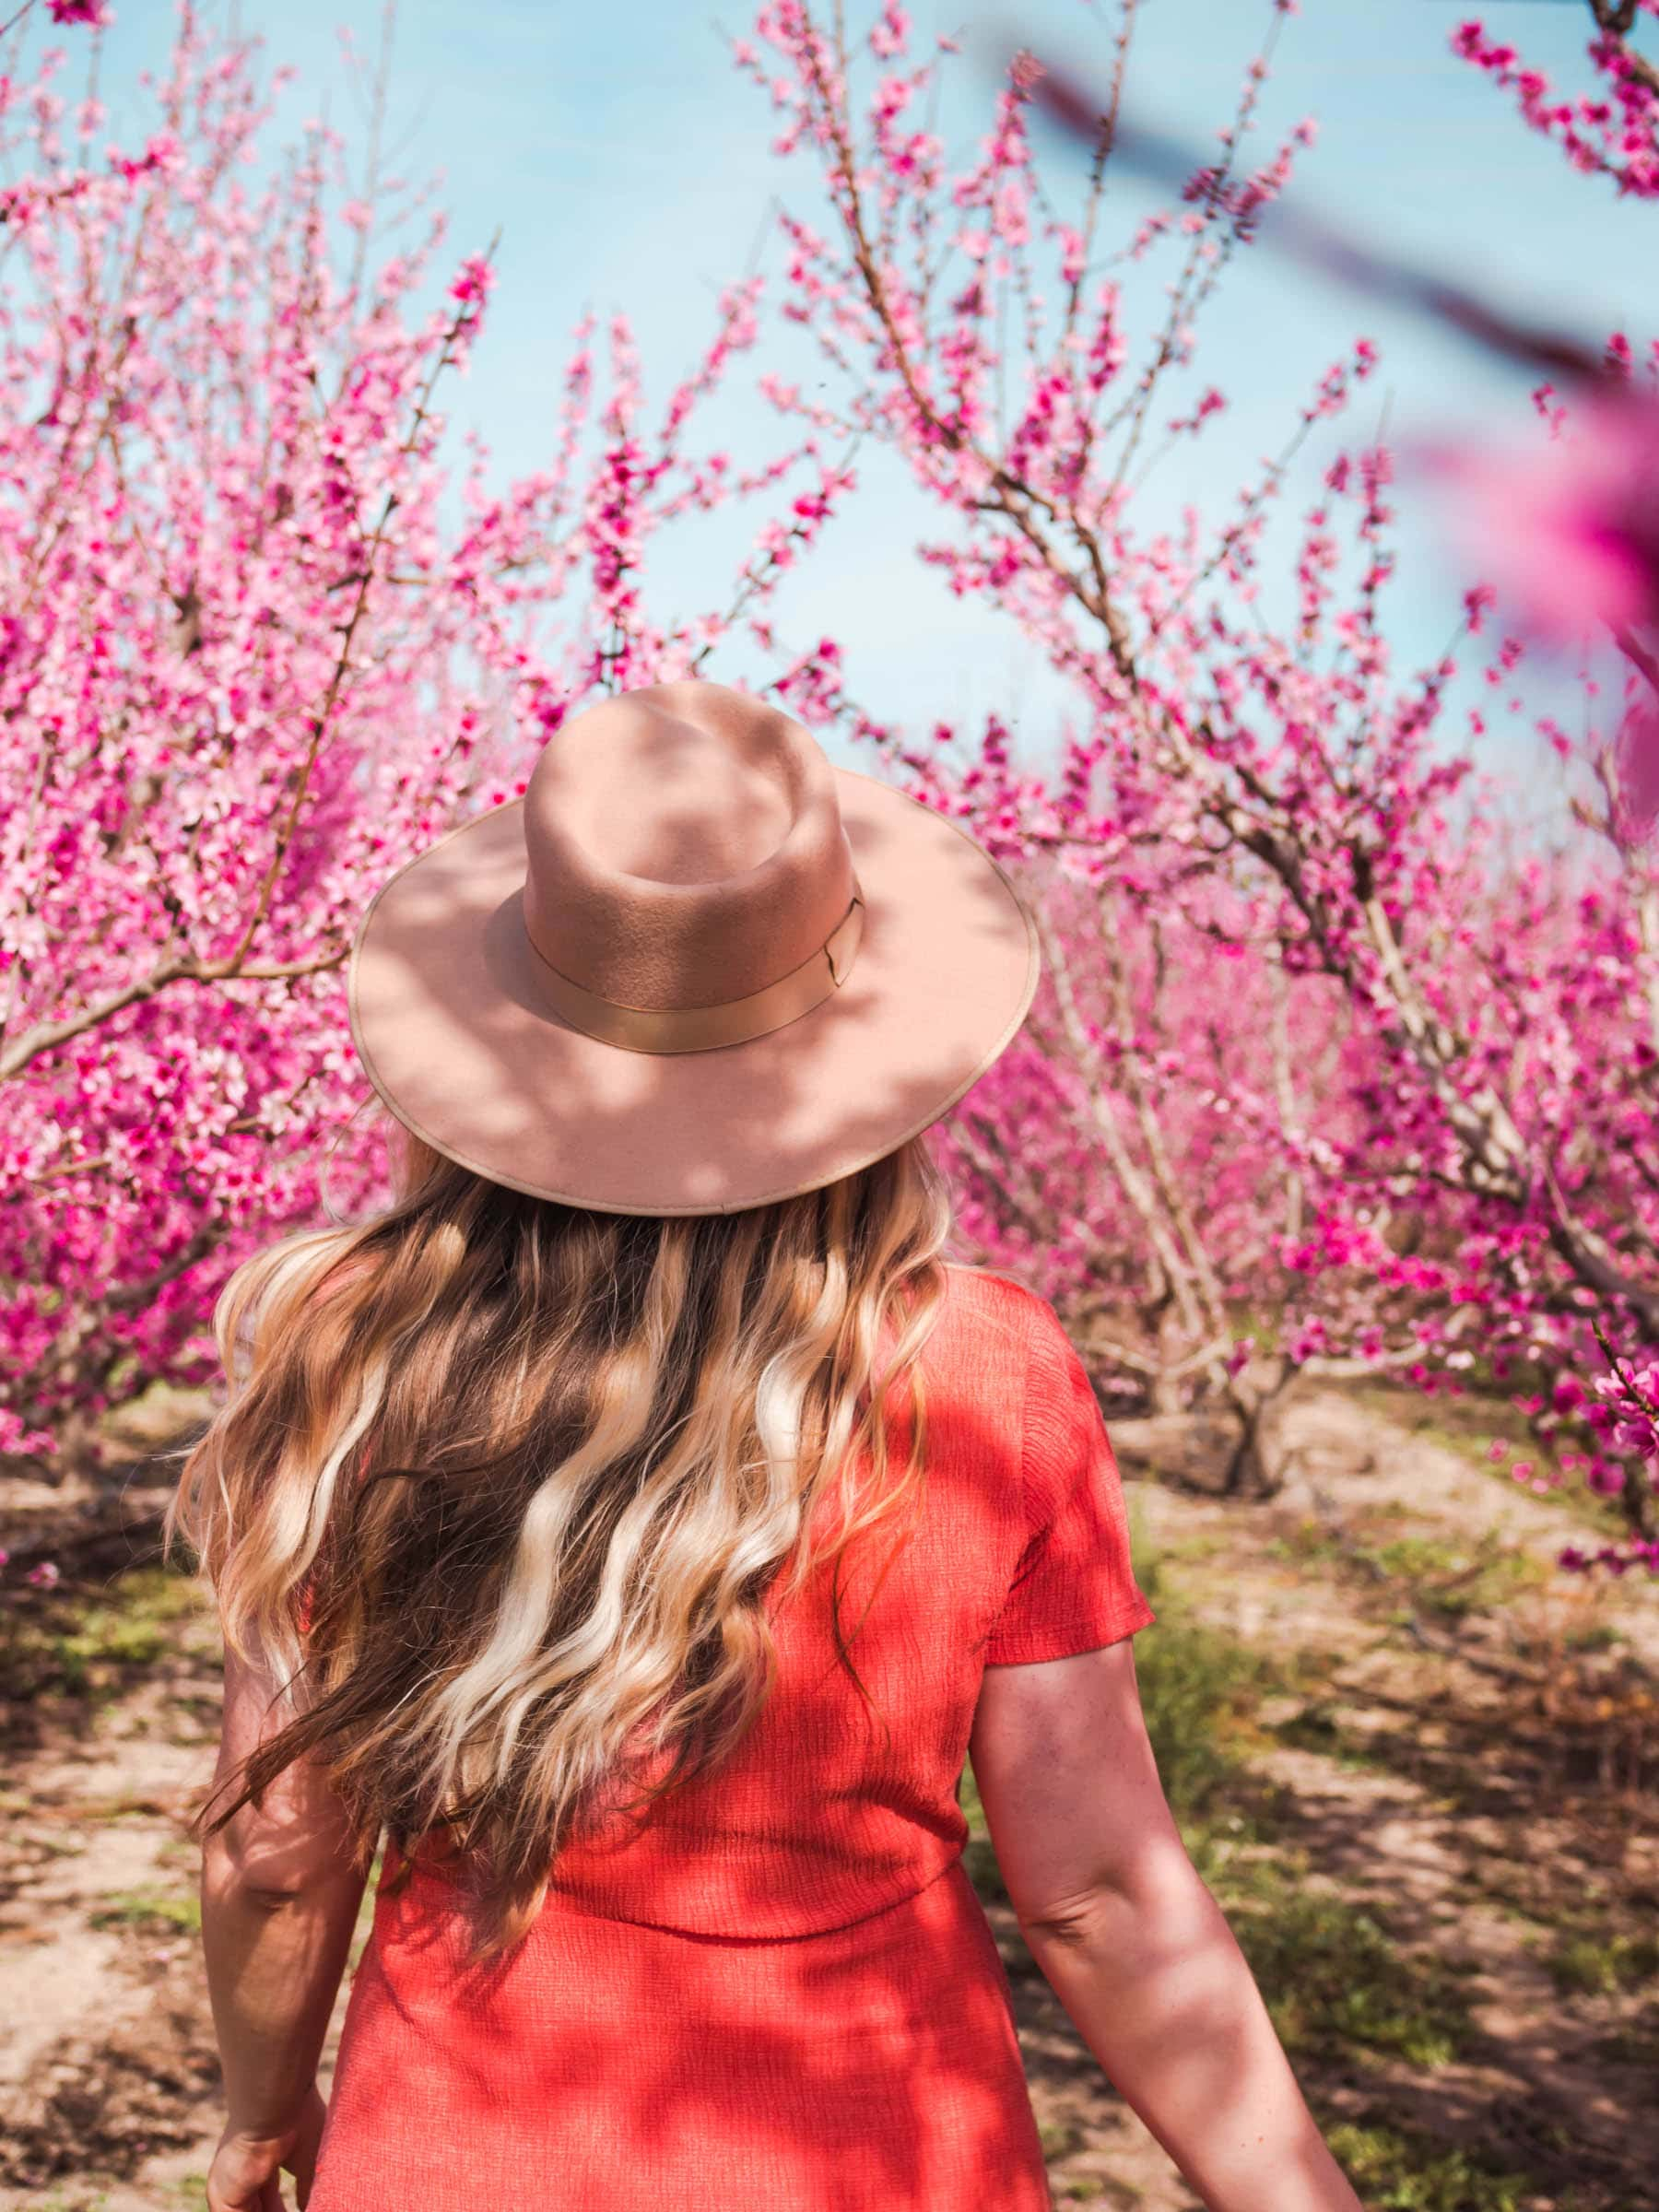 Running in a field of peach tree blossoms in Murcia, Spain - Click through for a complete guide to Floración de Cieza